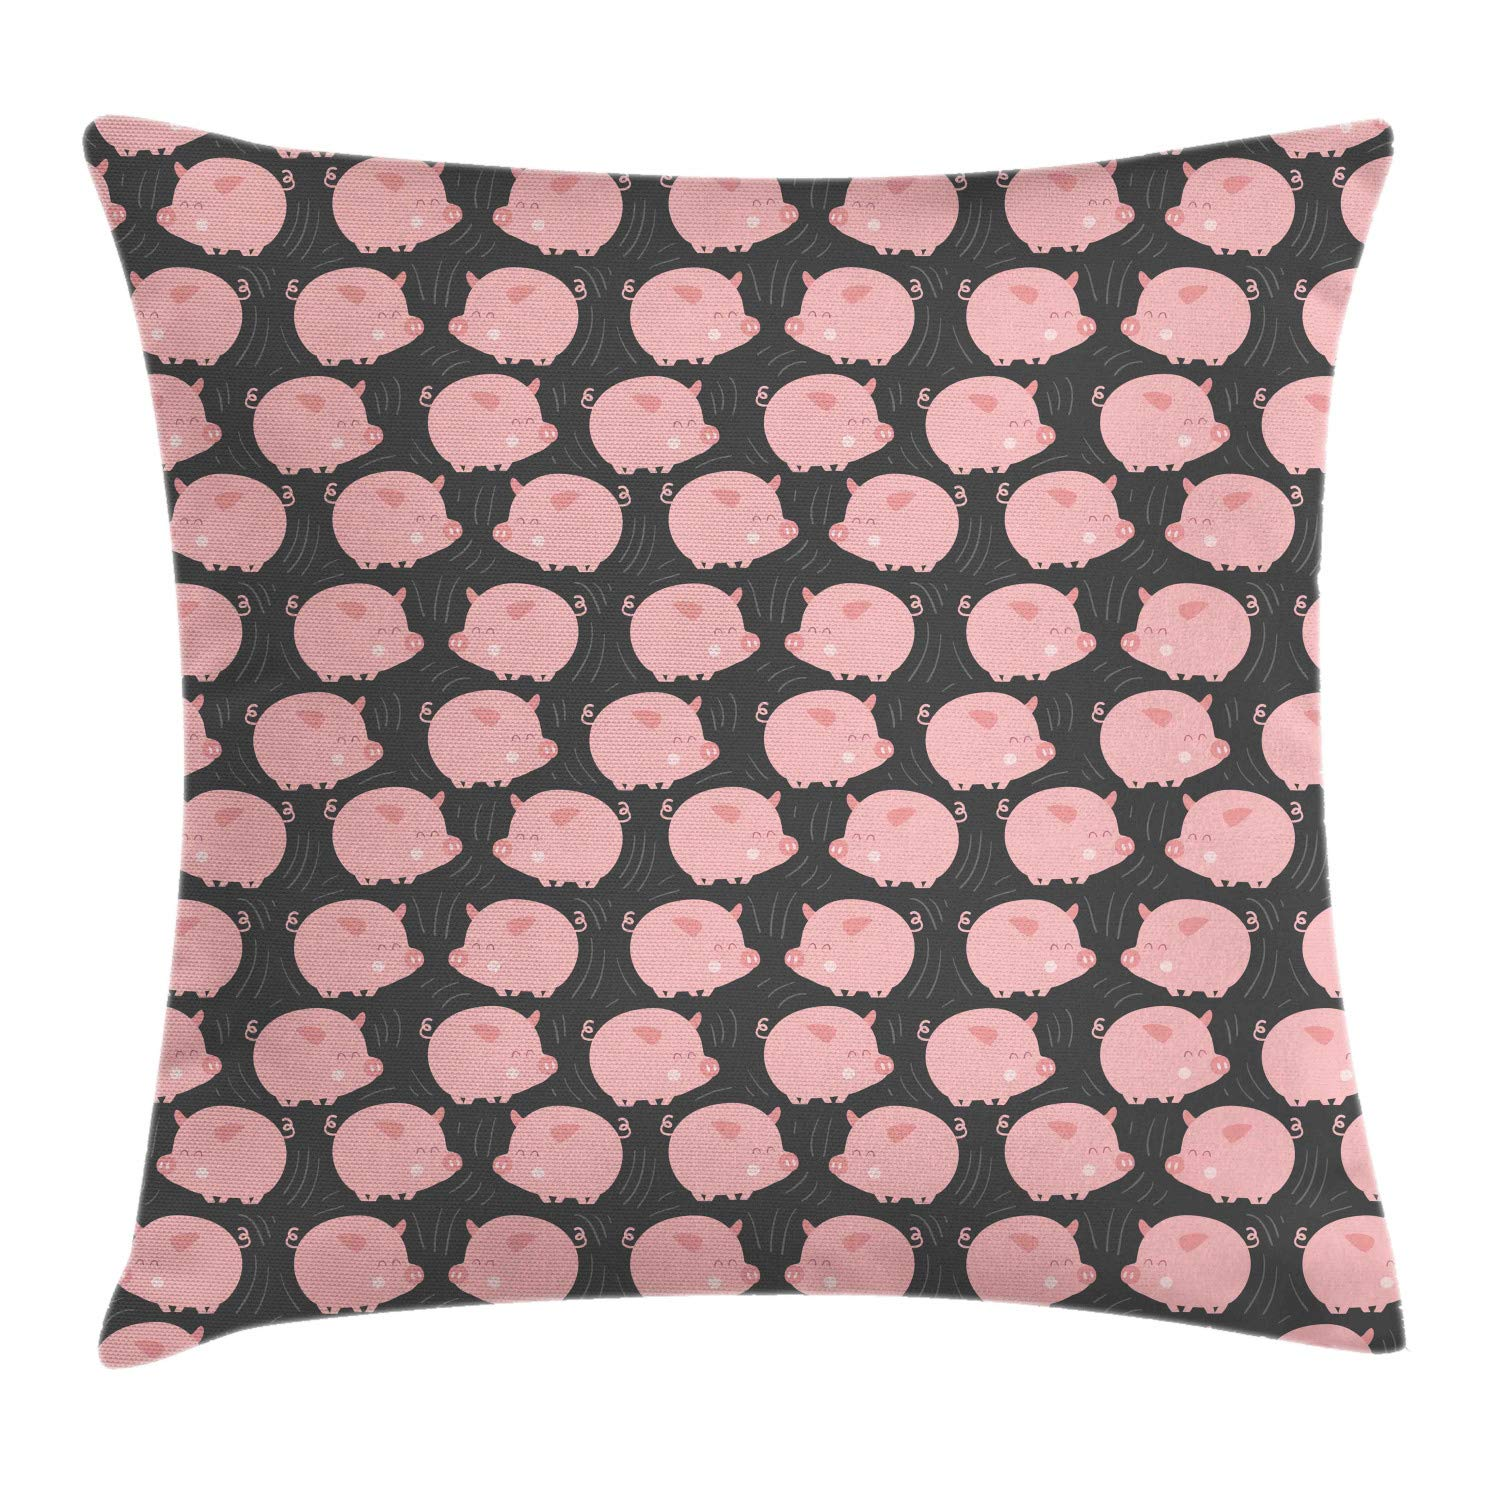 Lunarable Nursery Throw Pillow Cushion Cover, Smiling Cheerful Pig in Cartoon Style Preschool Theme Domestic Farm Animal, Decorative Square Accent Pillow Case, 24'' X 24'', Grey and Blush by Lunarable